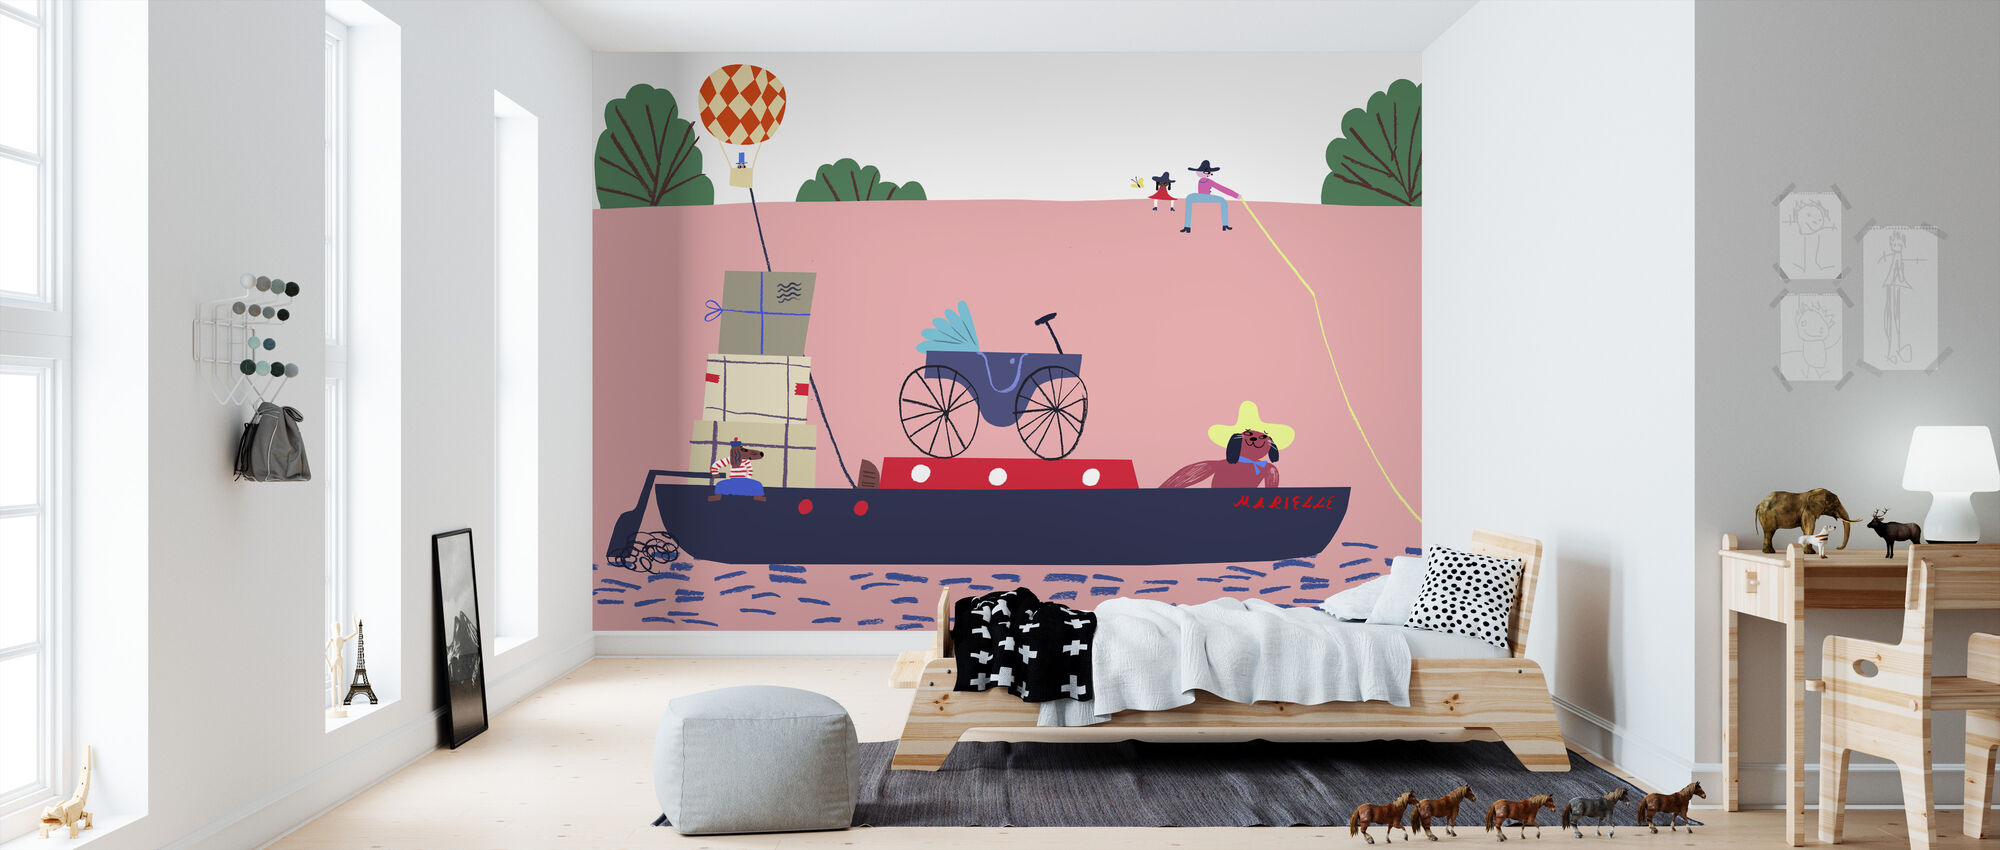 Boat and the Balloon - Wallpaper - Kids Room